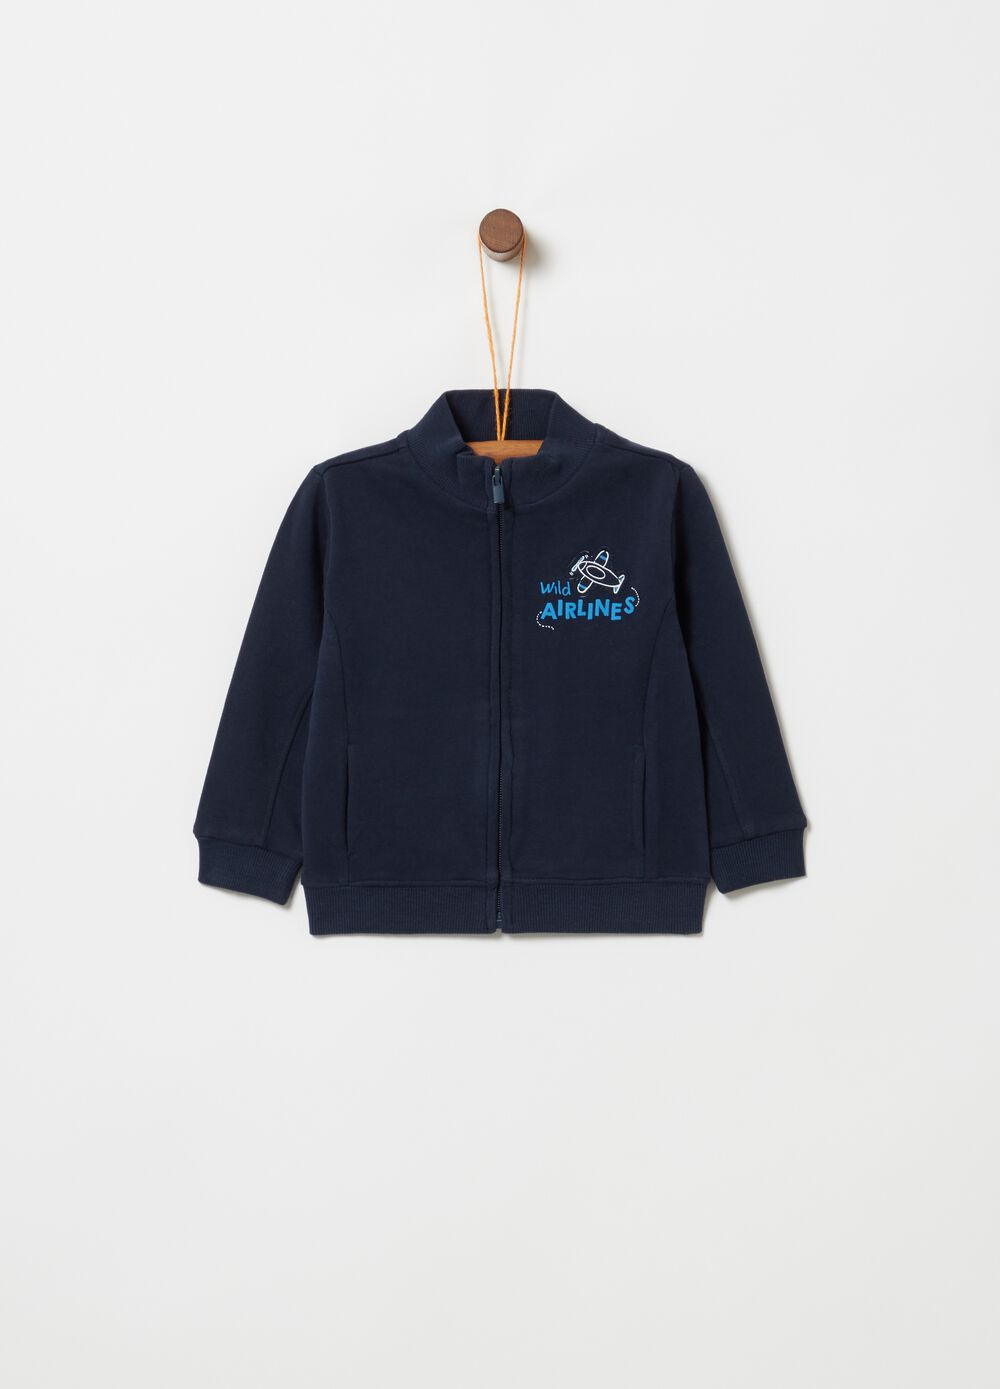 Full-zip top in 100% cotton fleece with print